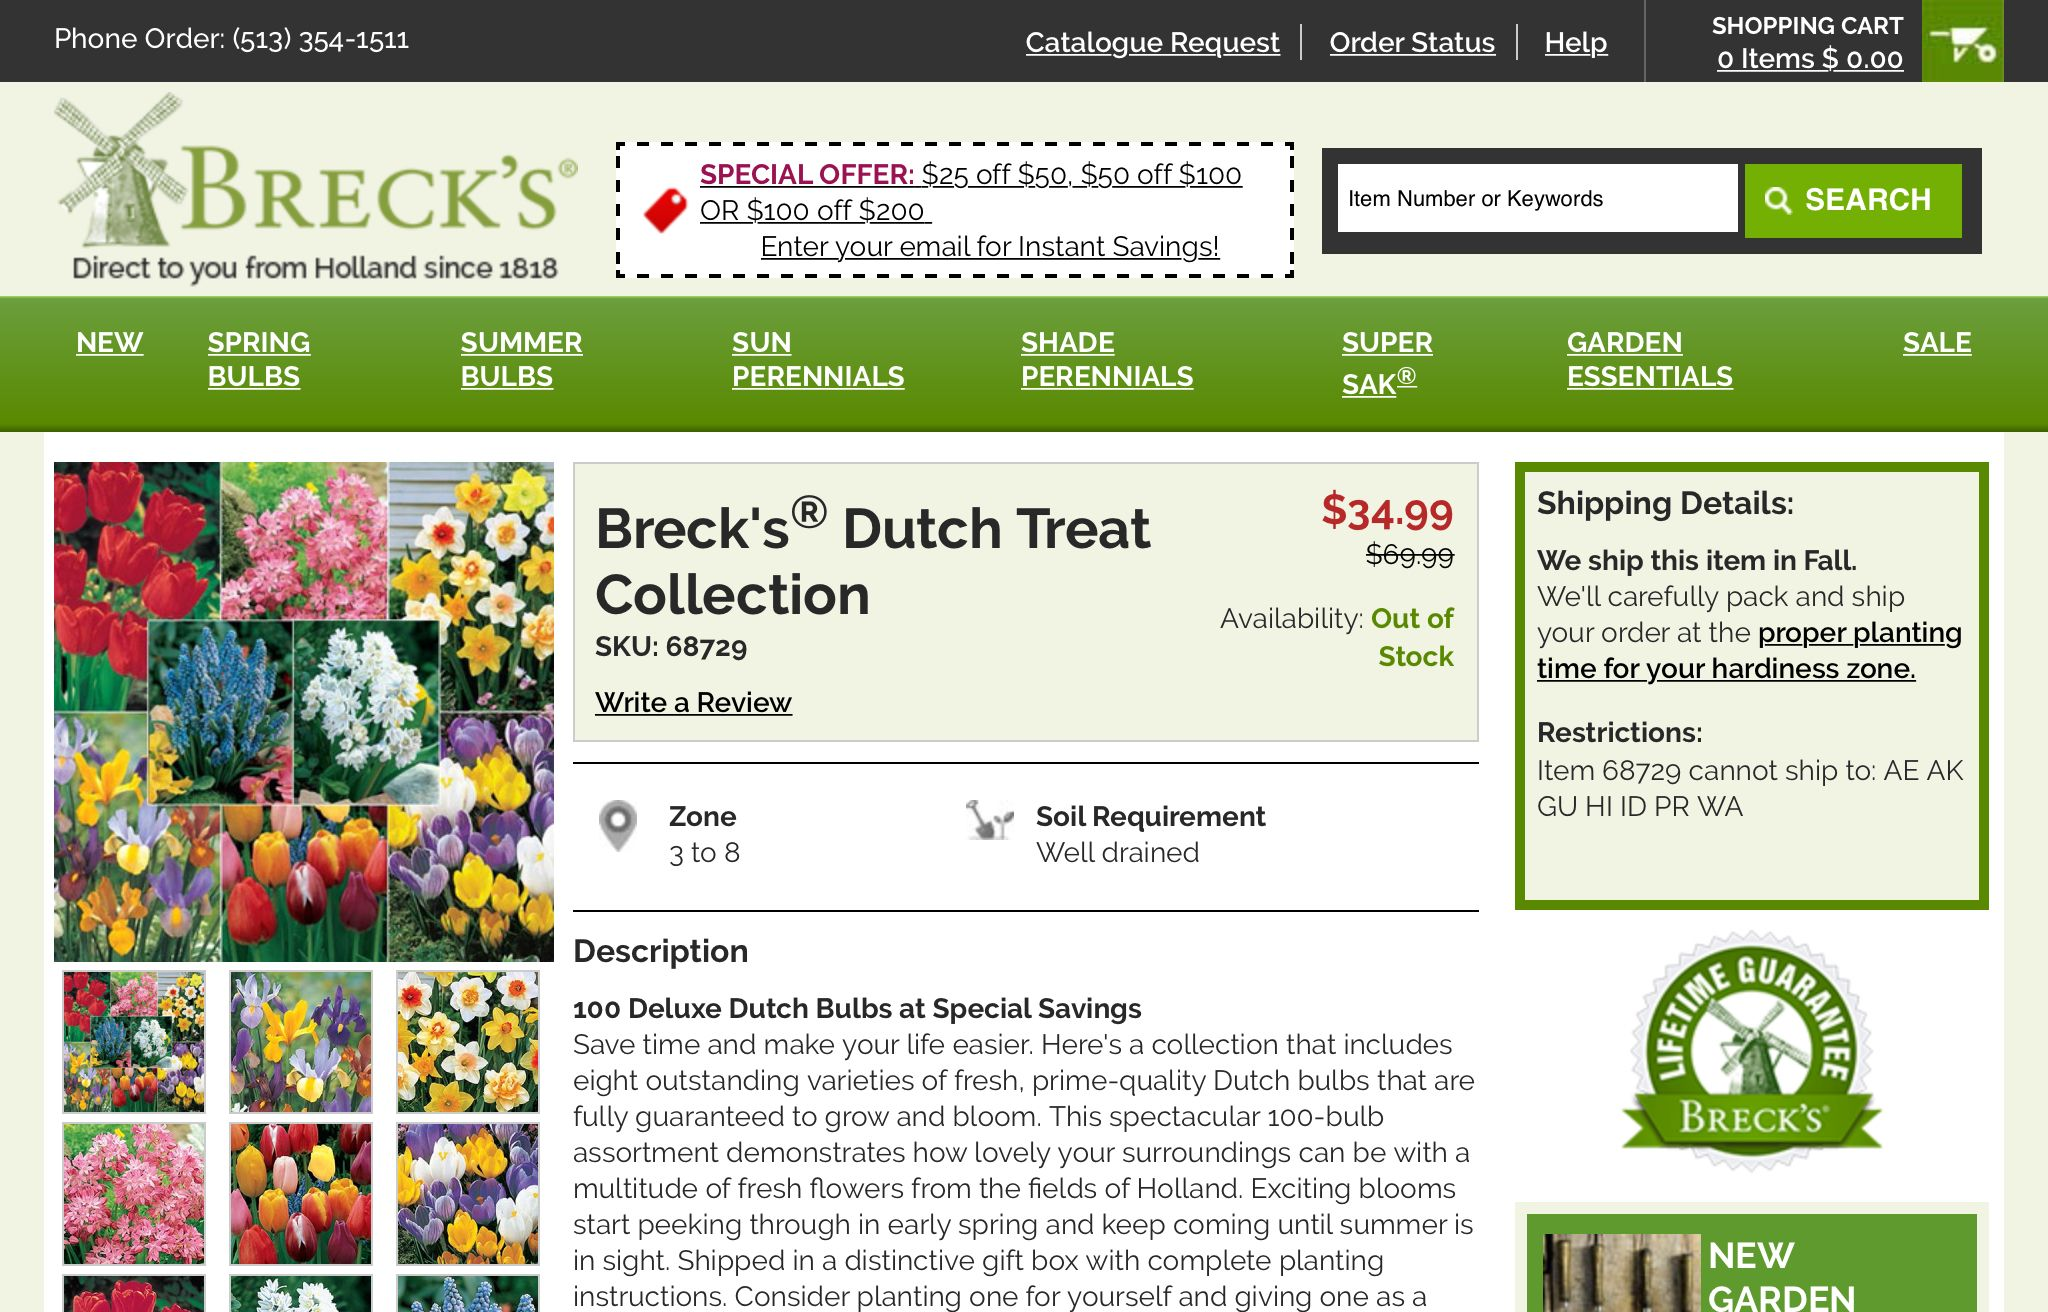 http://www.brecks.com/product/Breck_Dutch_Treat_Collection